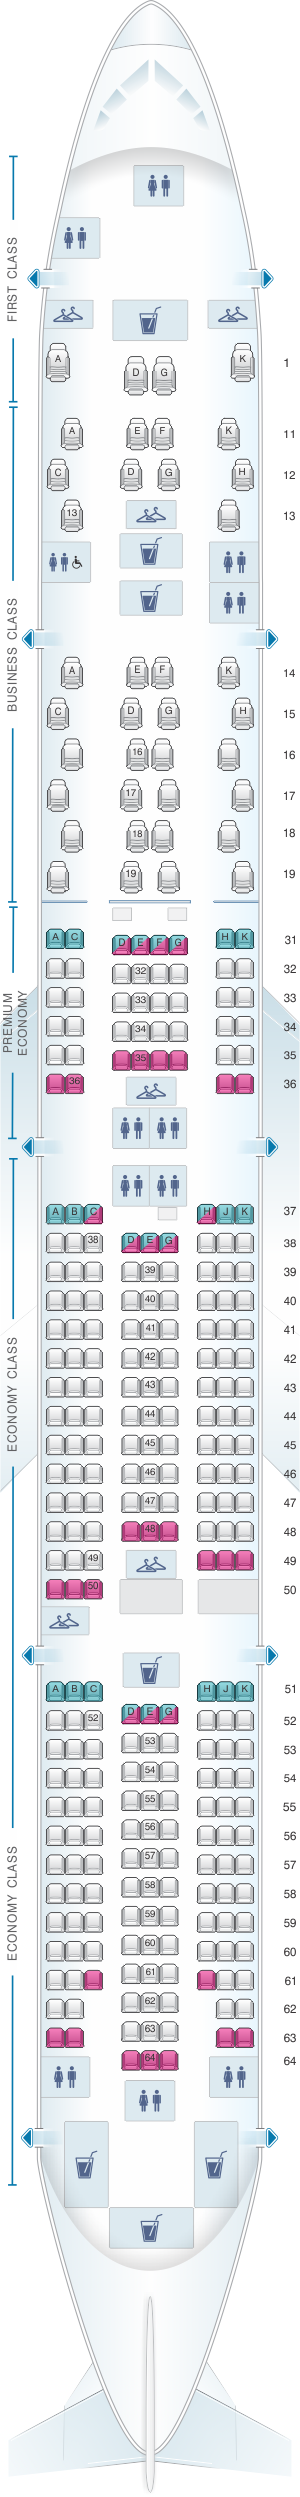 Seat map for China Southern Airlines Boeing B777 300ER